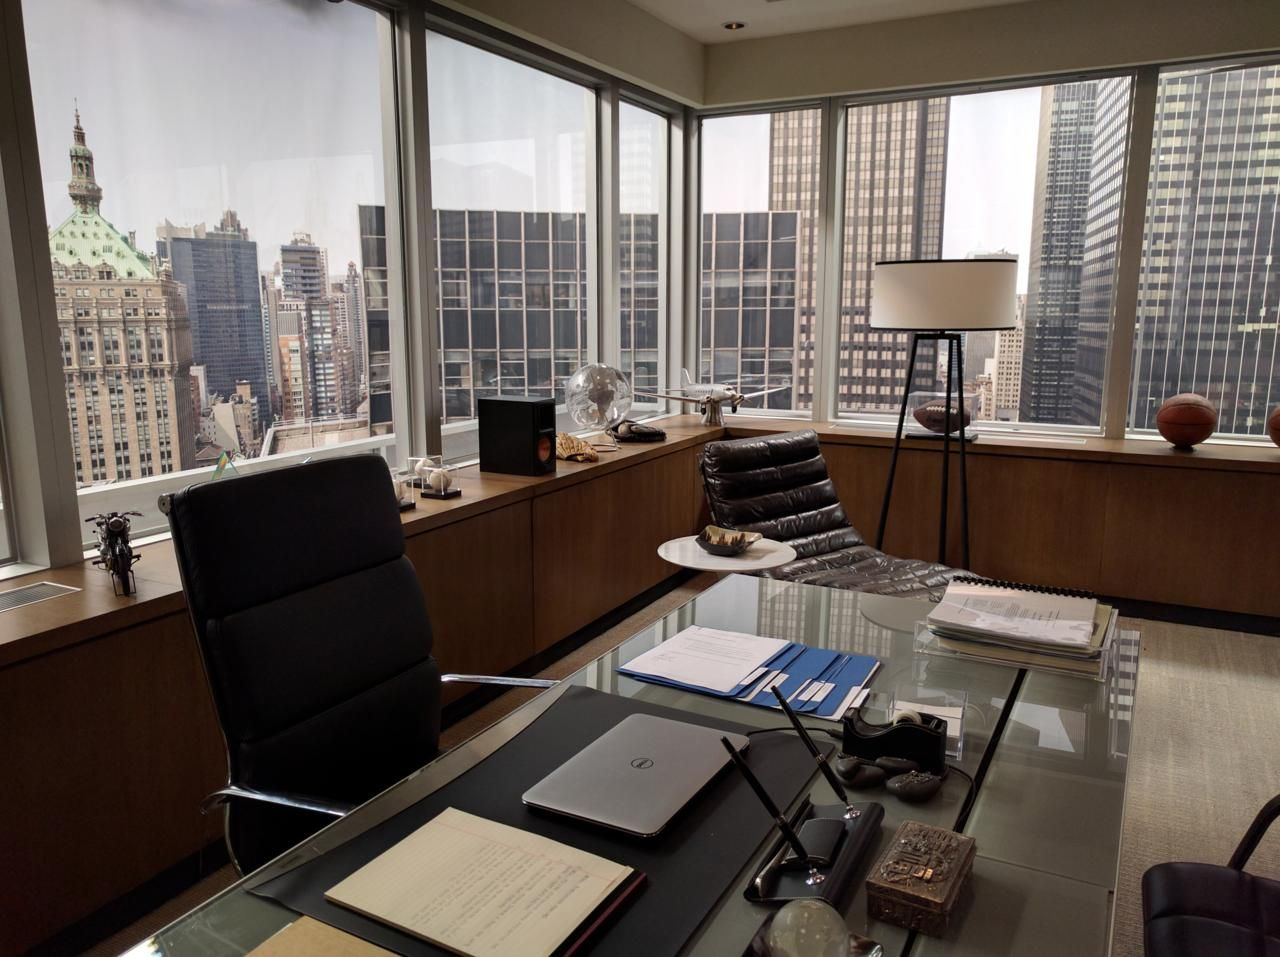 office interior pics. Delighful Interior Suits Harvey Specter Office Interior To Office Interior Pics